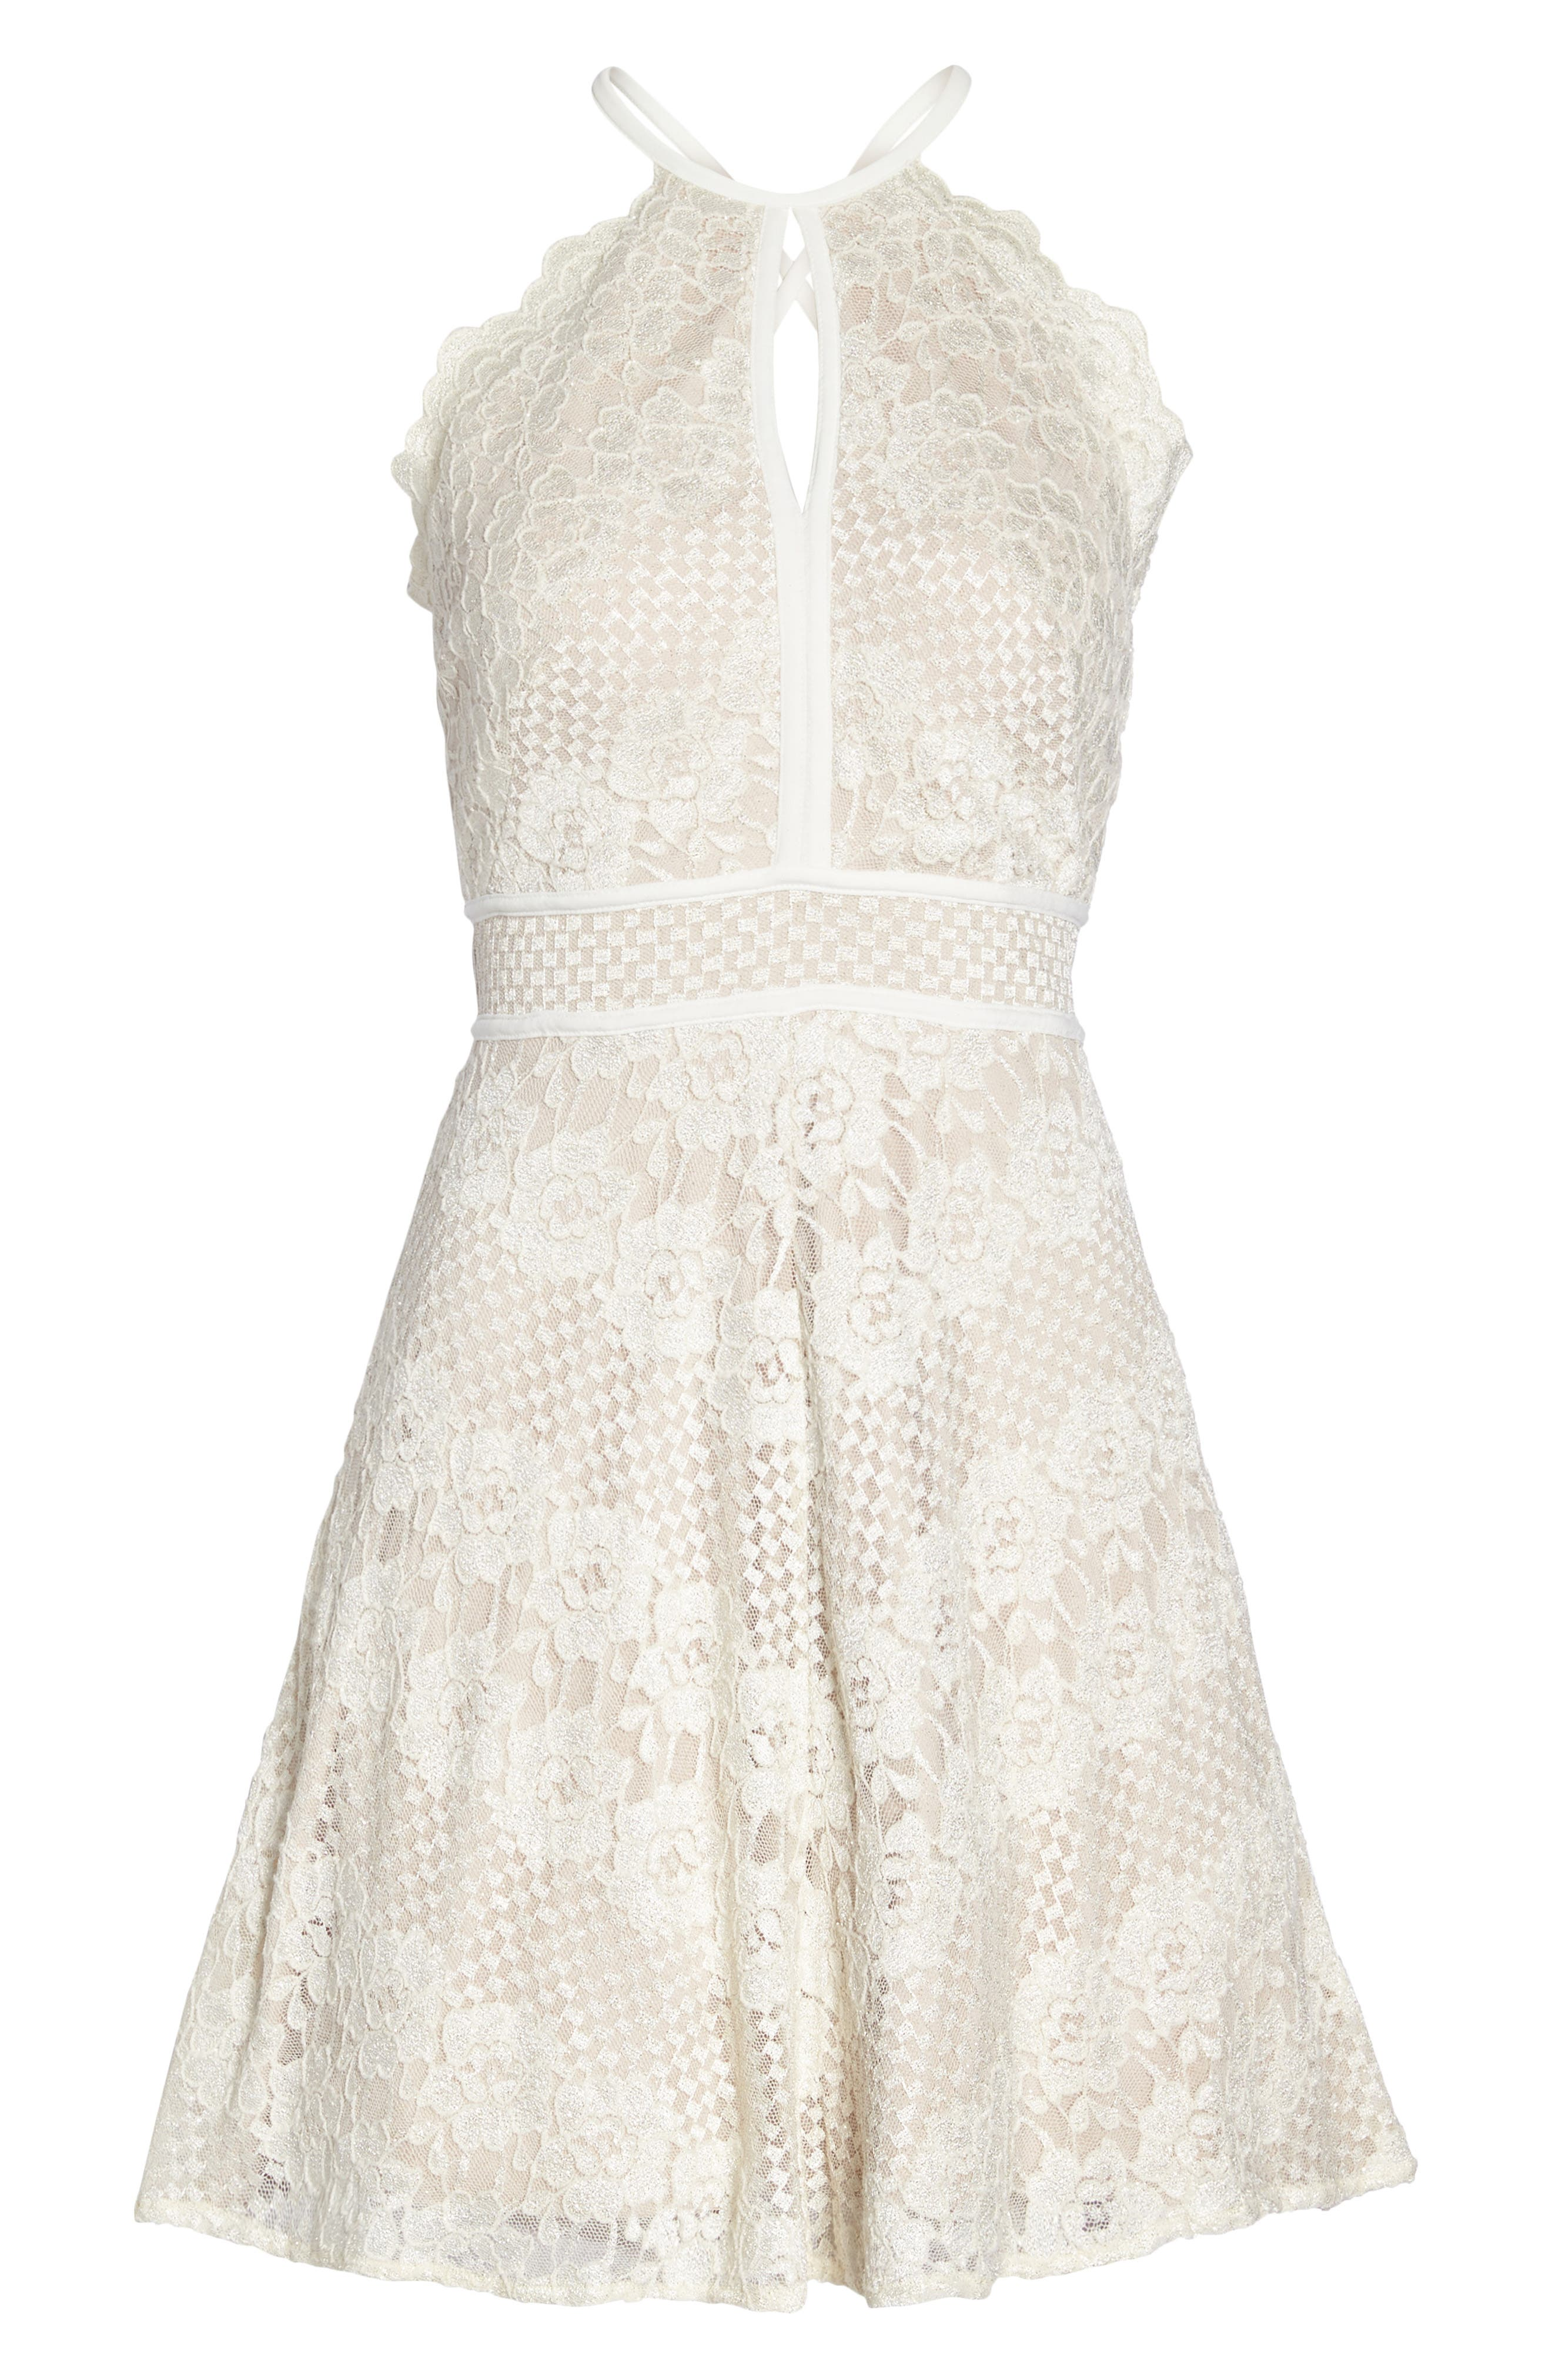 Lace Halter Dress,                             Alternate thumbnail 6, color,                             IVORY/ NUDE